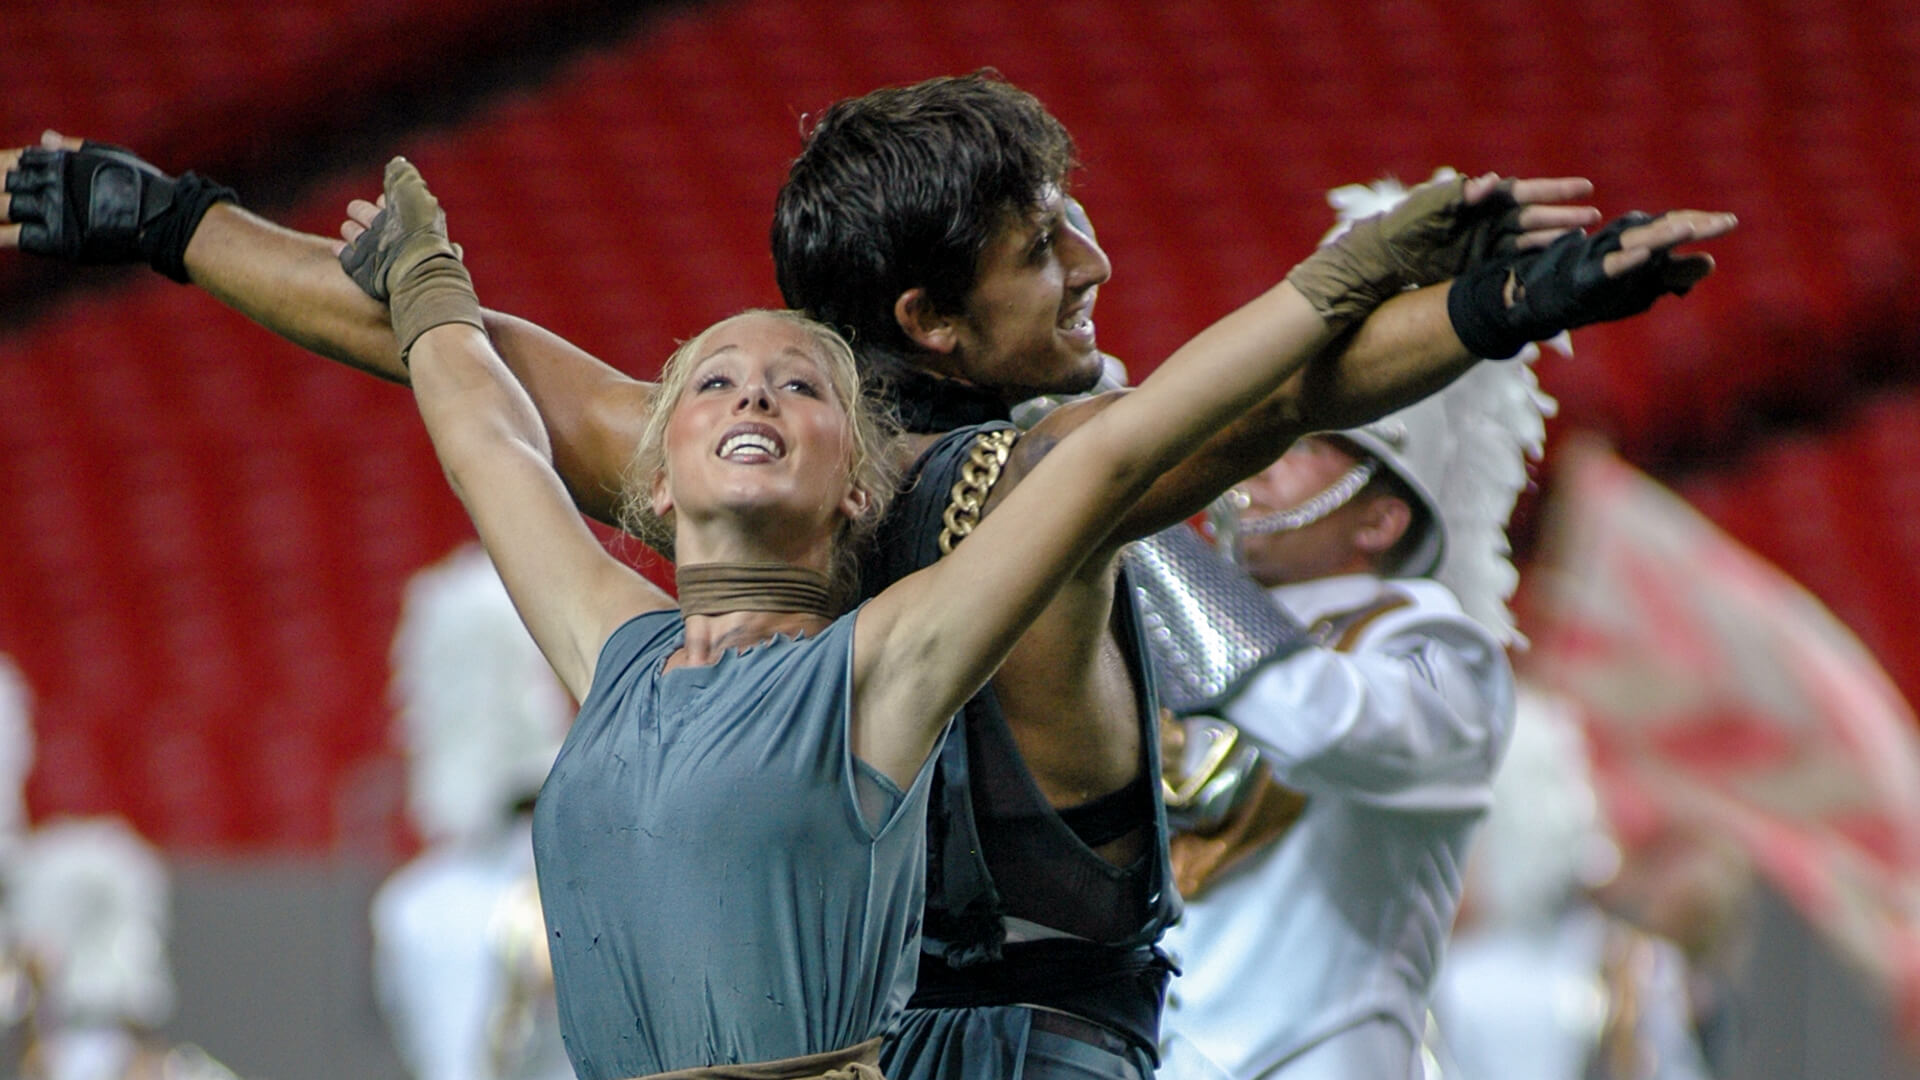 Regiment returning to coed color guard